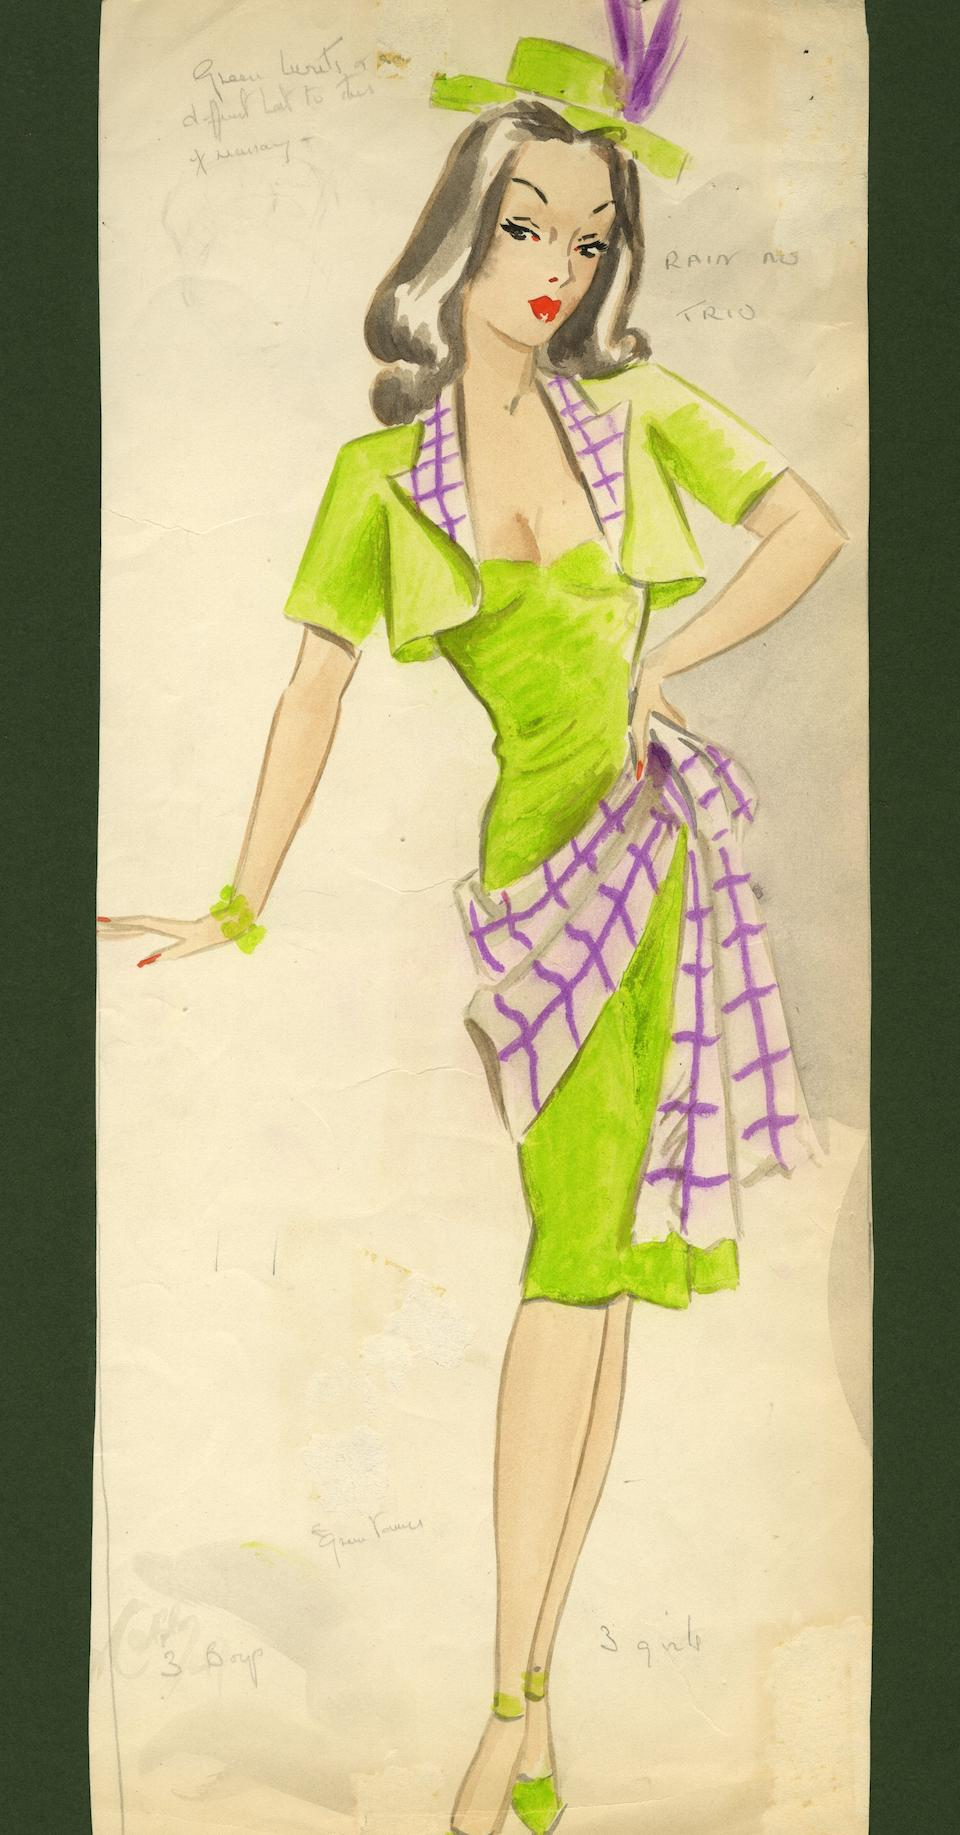 Ronald Cobb (British, 1907-1977): An original costume design for a Murray's Cabaret Club showgirl in a green dress and hat, 1950's,